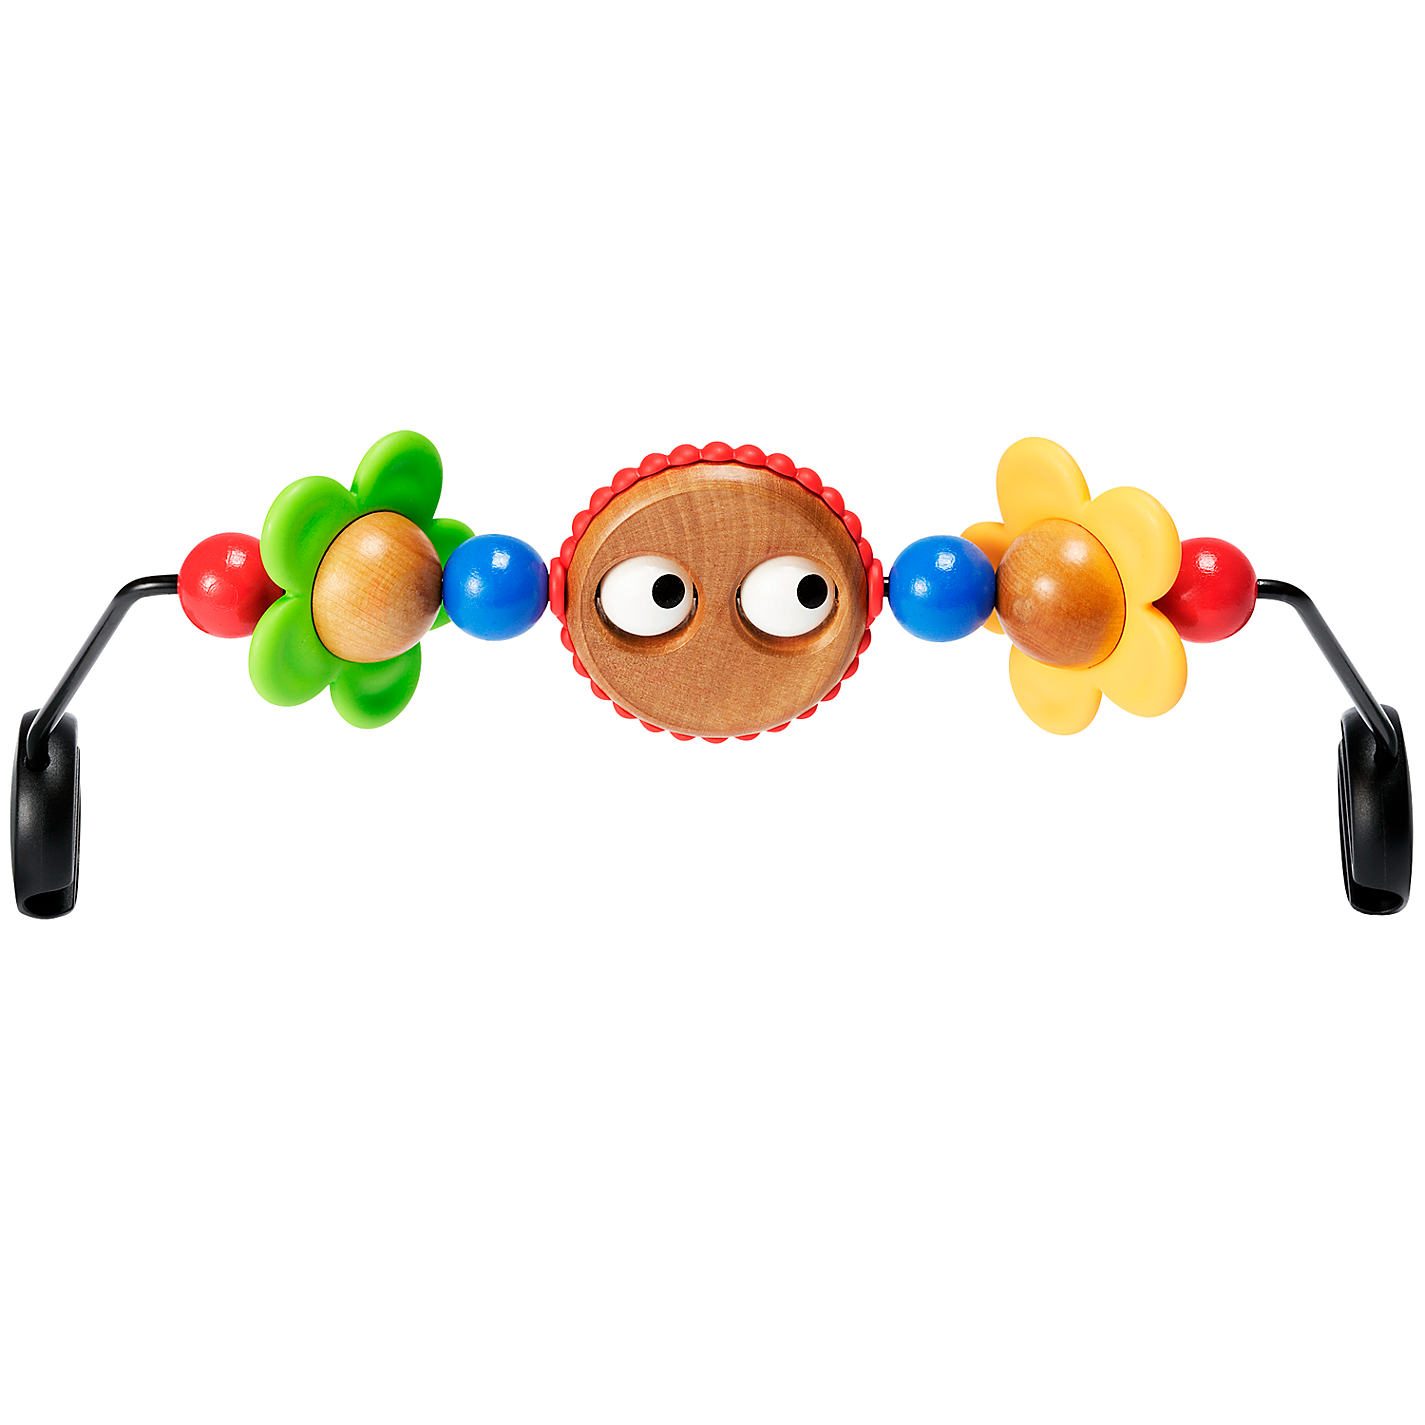 Buy BabyBjörn Wooden Toy